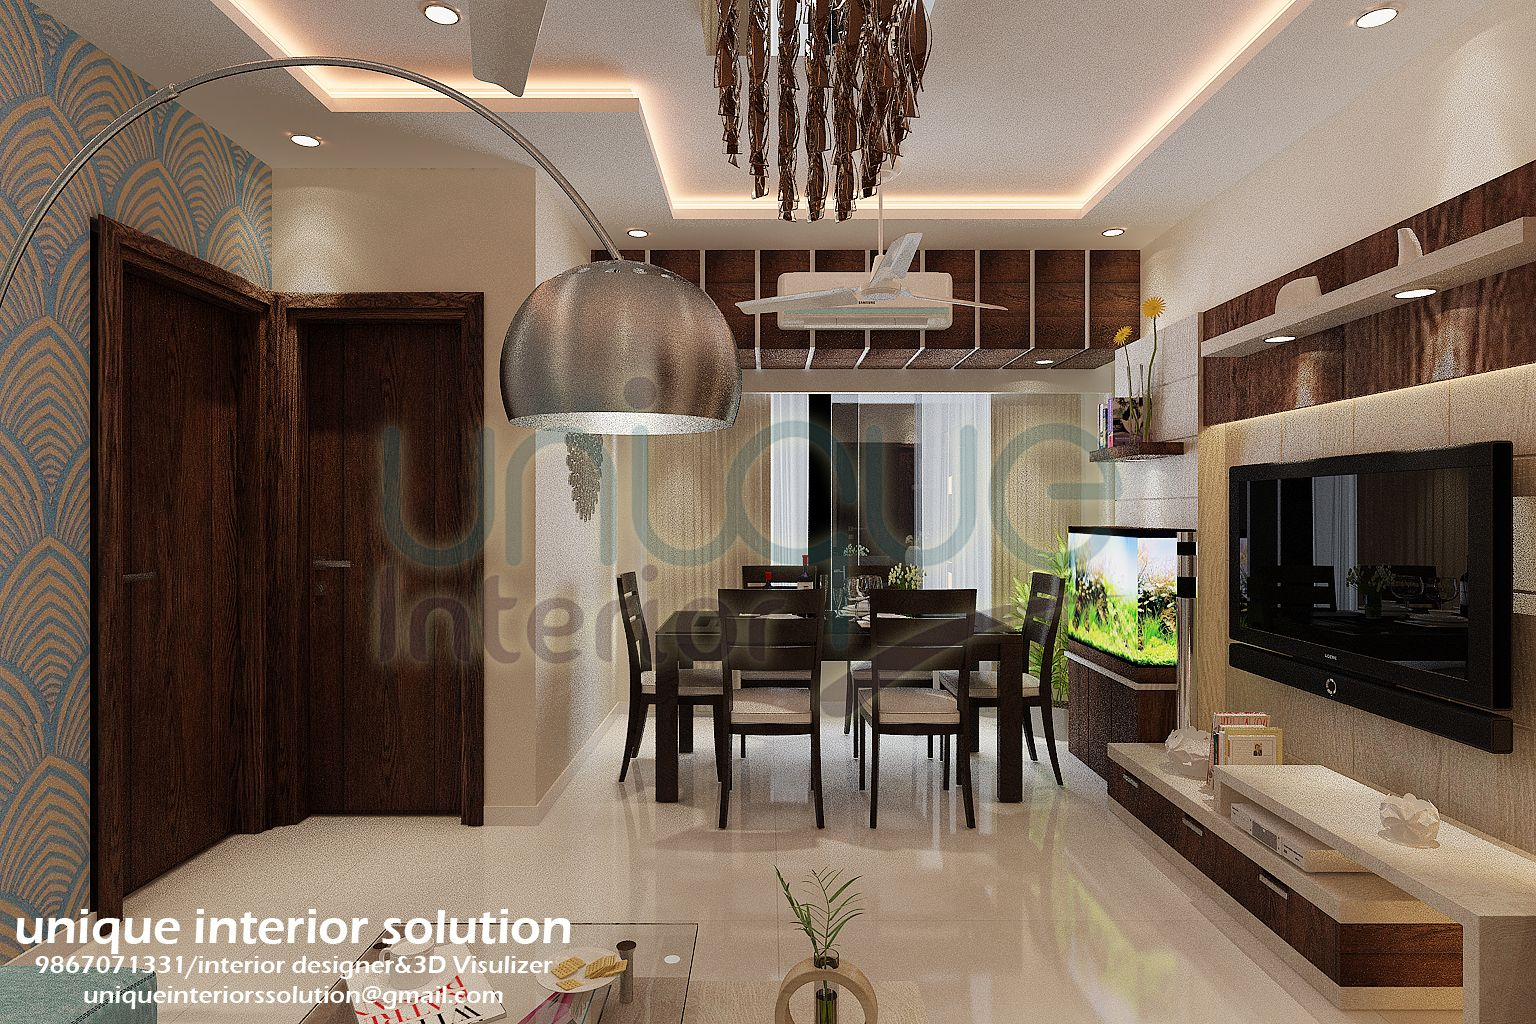 Unique Interior Goregaon Designer Mumbai Solution Contractor Furniture Dealer Decorator Design Jogeshwari West Furniture Dealers Home Furniture